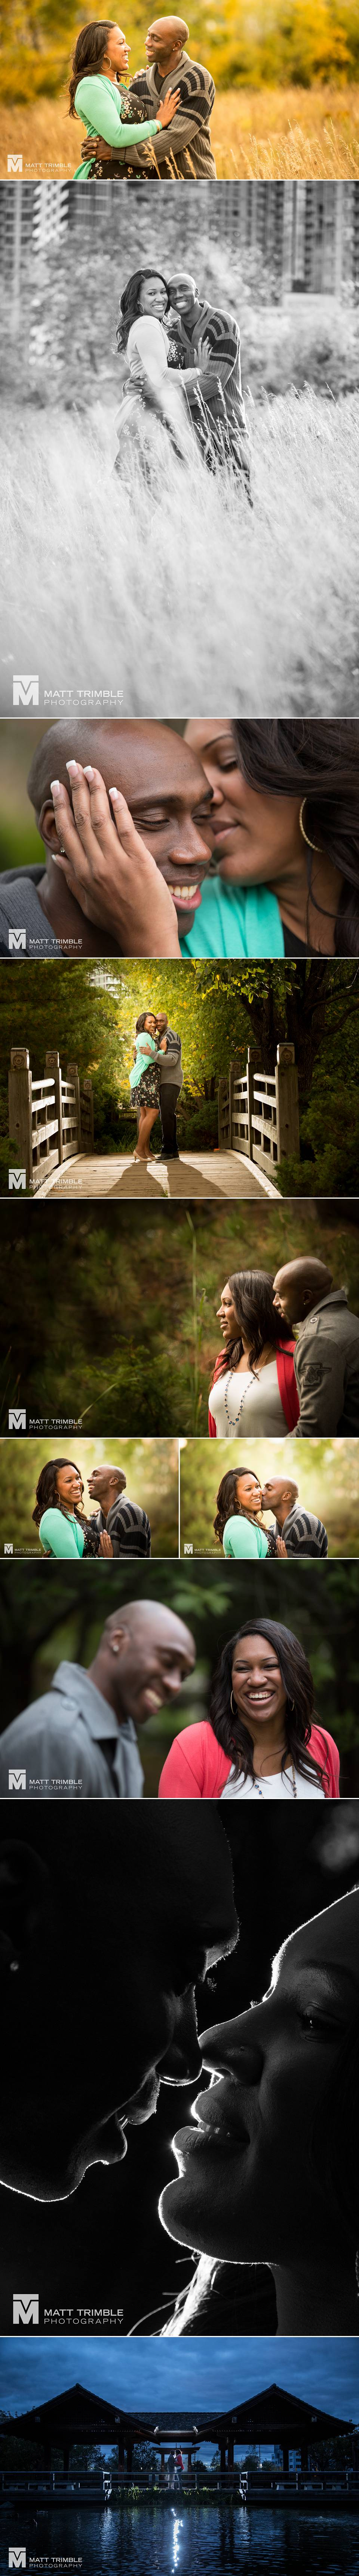 Kariya Park engagement photography